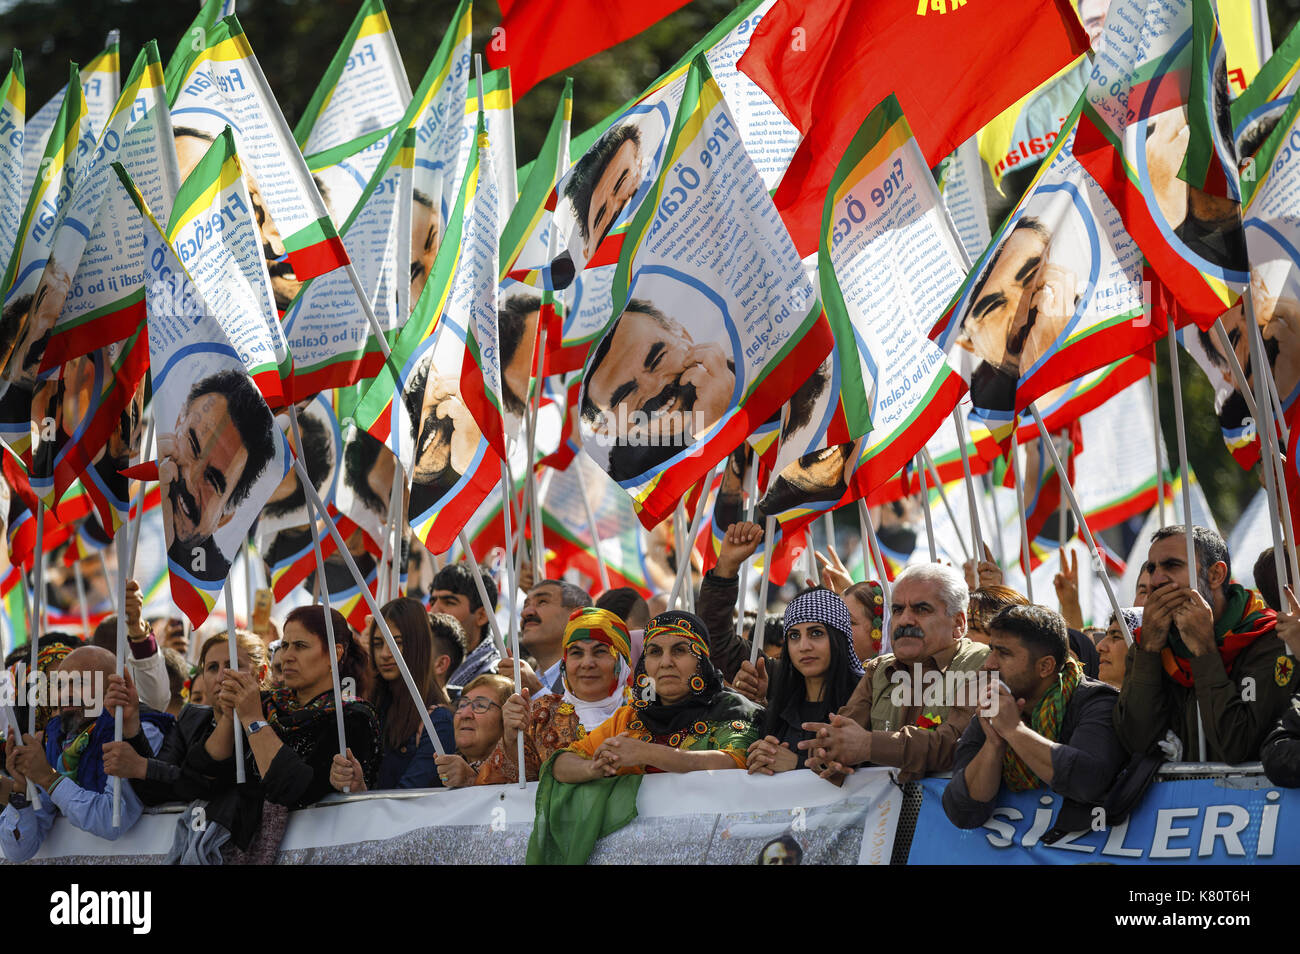 Cologne, Germany. 16th Sep, 2017. dpatop - Participants of the international Kurdish culture festival wave flags showing Öcalan, the leader of the Kurdistan Workers' Party (PKK), at the Deutzer shipyard in Cologne, Germany, 16 September 2017. Turkey ordered the German ambassador in Ankara to the Foreign Ministry protesting against the Kurdish festival in Cologne. Photo: Christoph Hardt/Geisler-Fotopres/Geisler-Fotopress/dpa/dpa/Alamy Live News - Stock Image